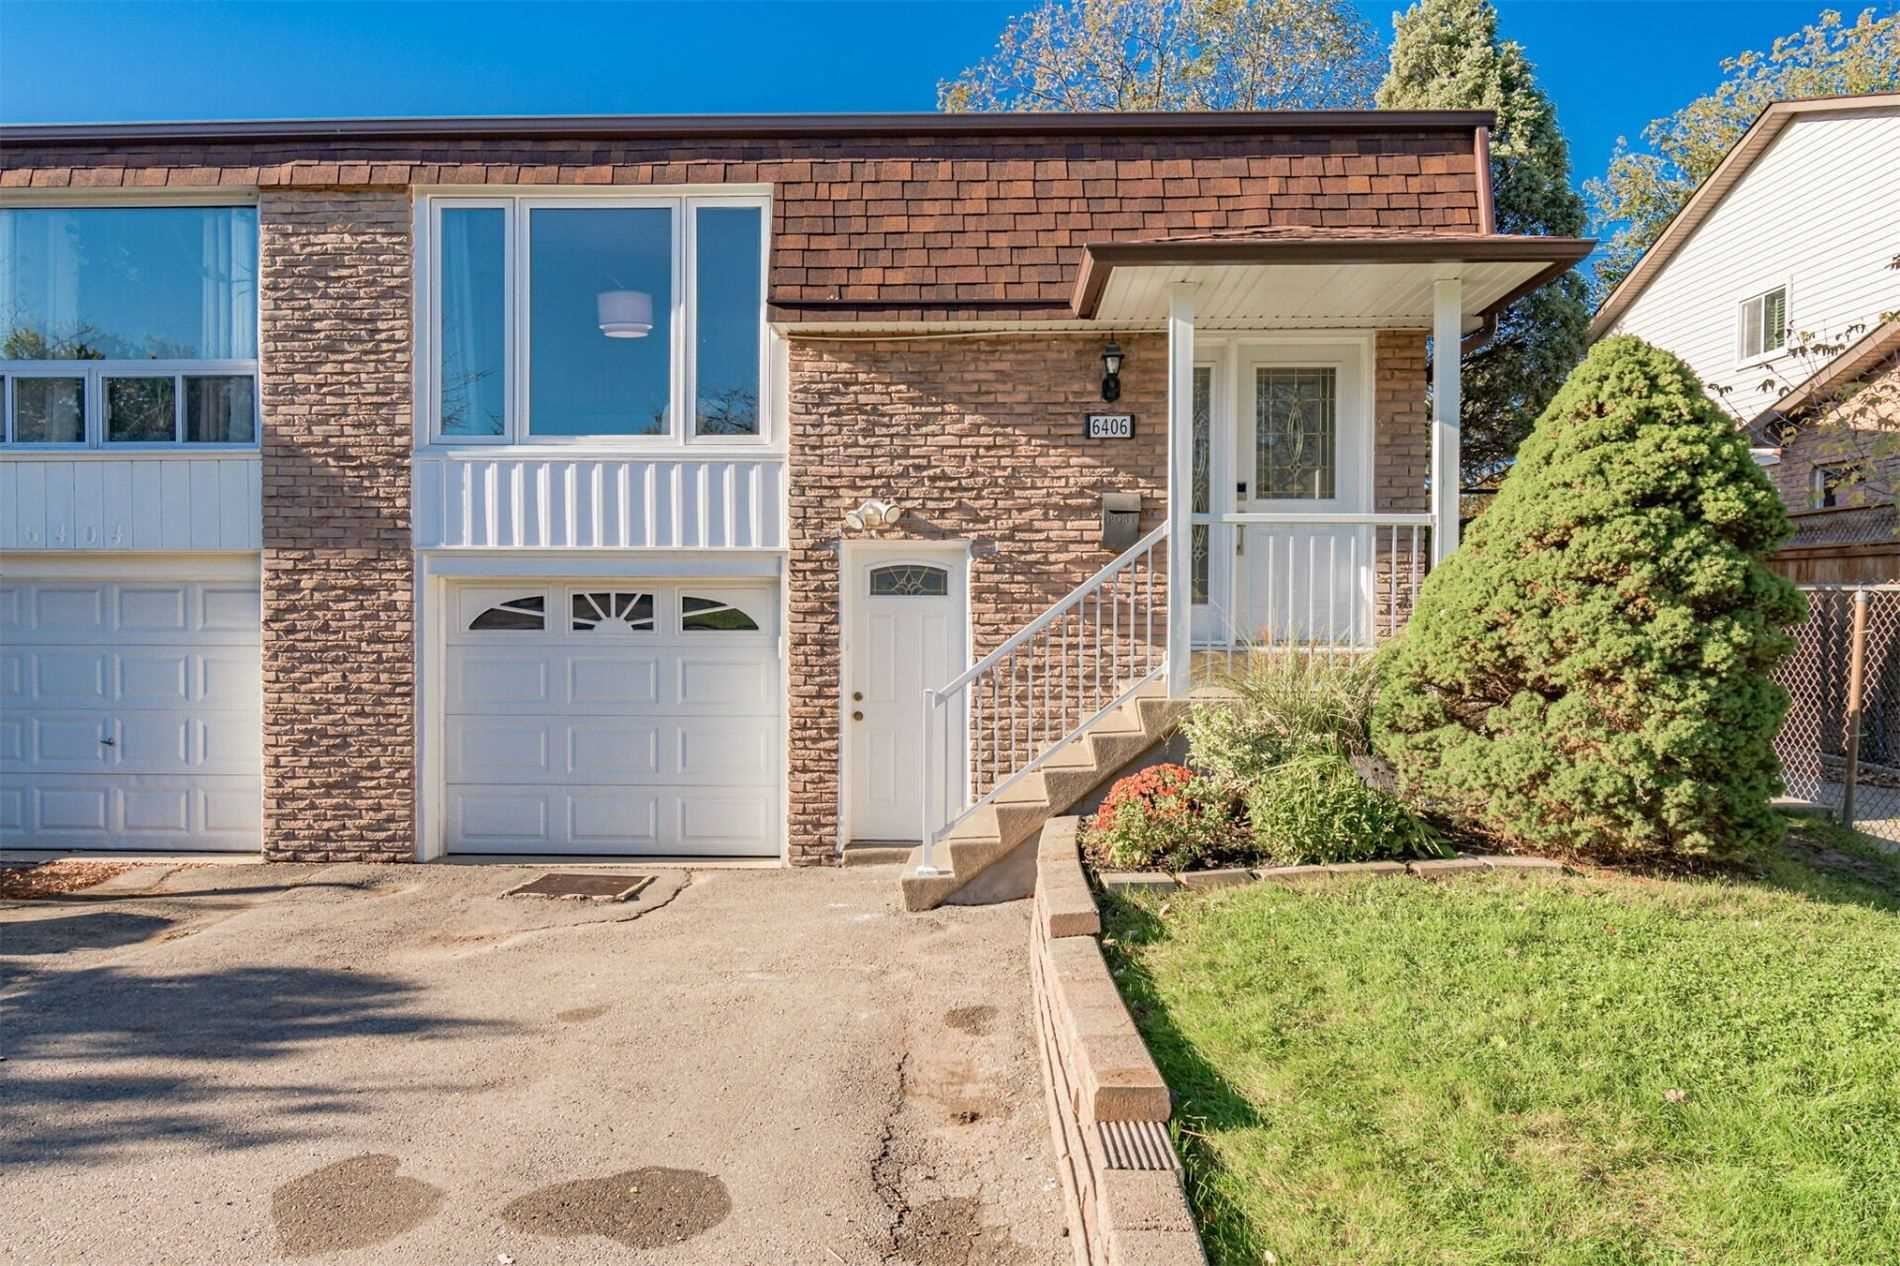 6406 Chaumont Cres, Mississauga, ON L5N2M8 - MLS#: W5407348